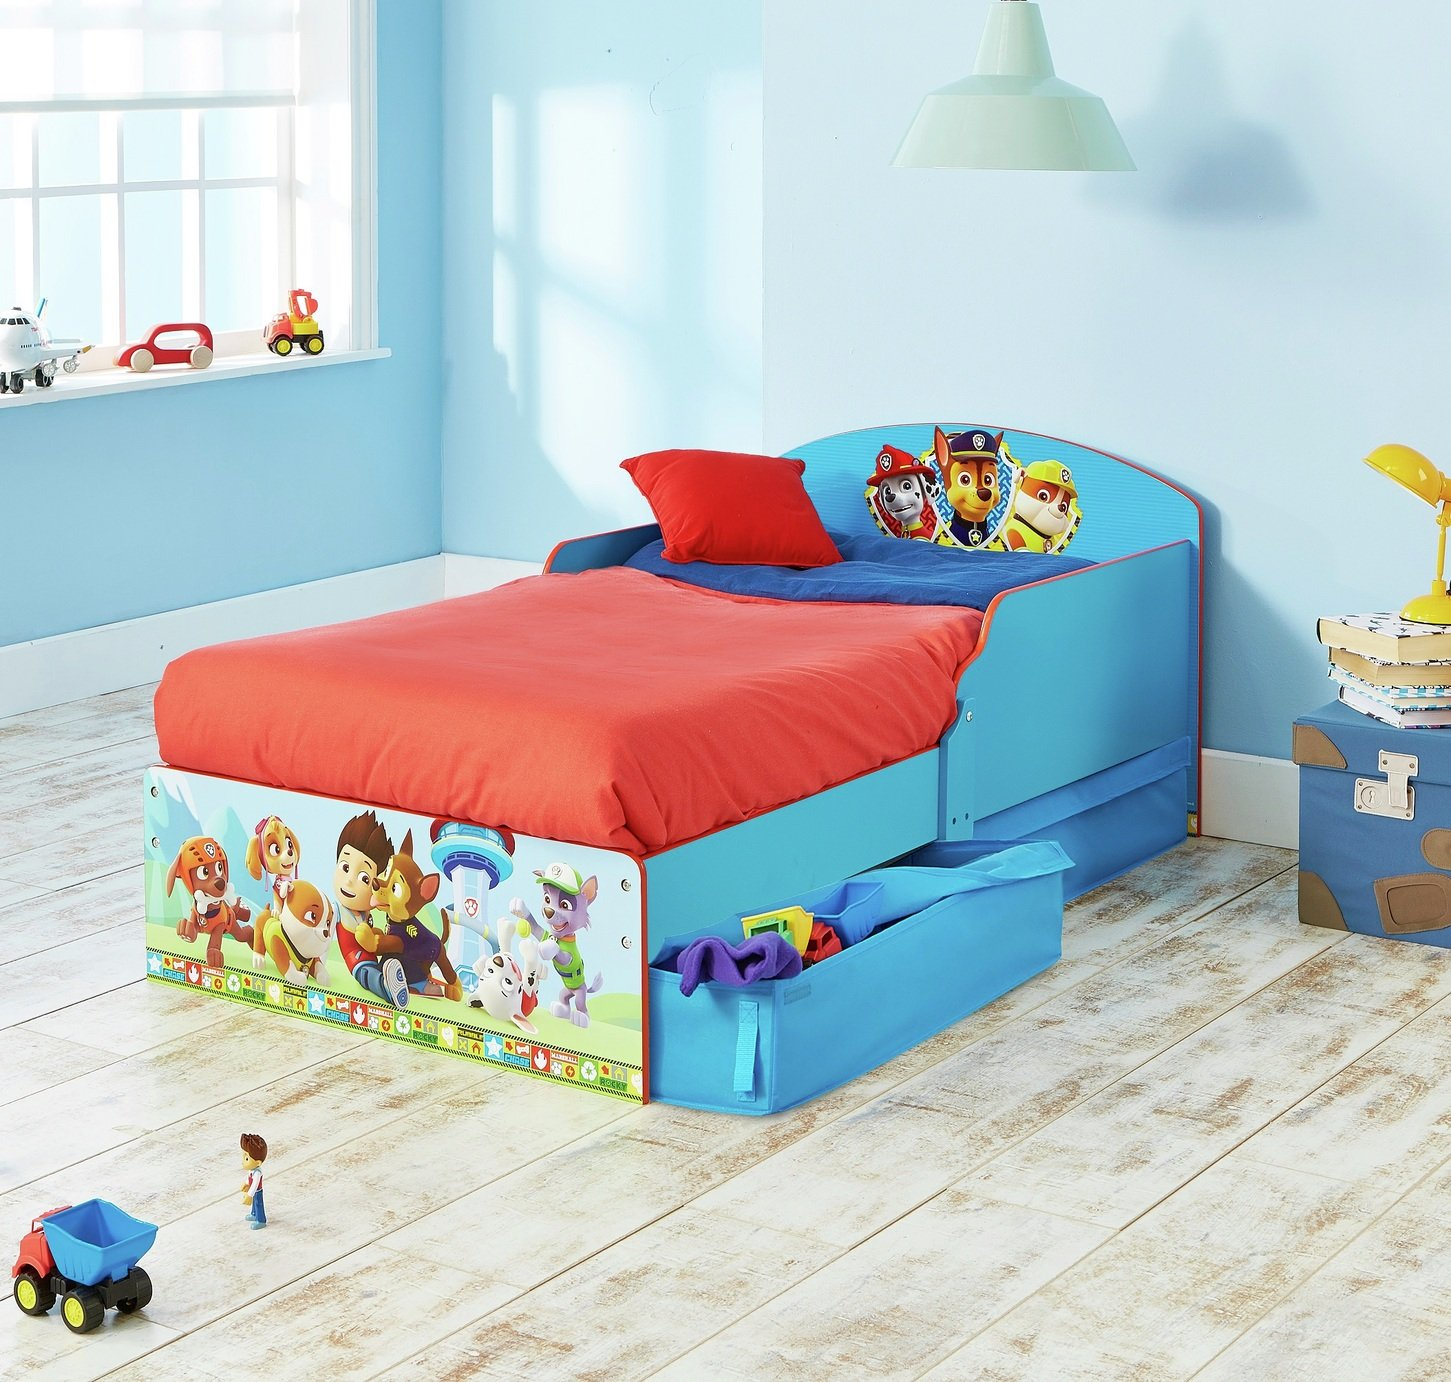 Paw Patrol Toddler Bed from Paw patrol